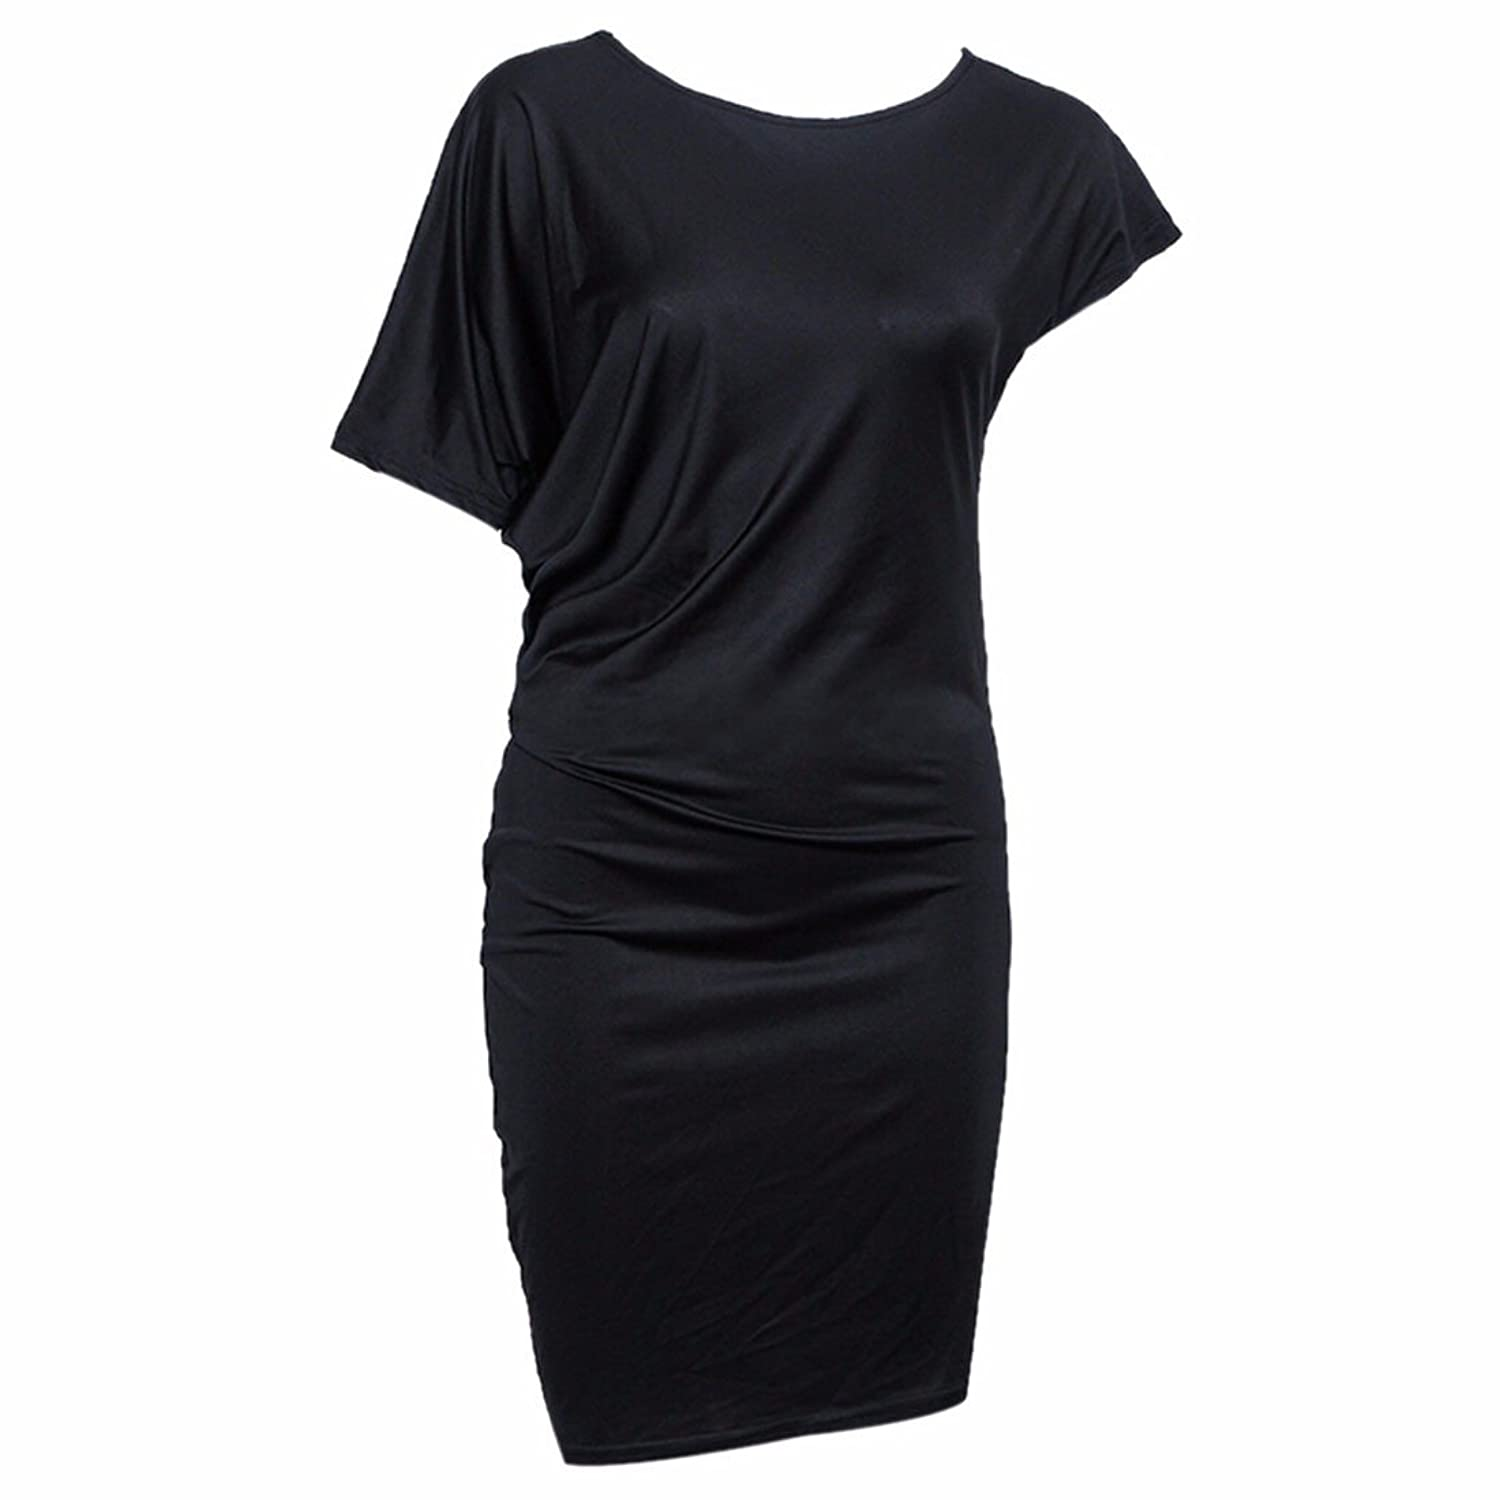 Solid Color Lady Short Sleeve Slim Bodycon Short Dress Evening Cocktail